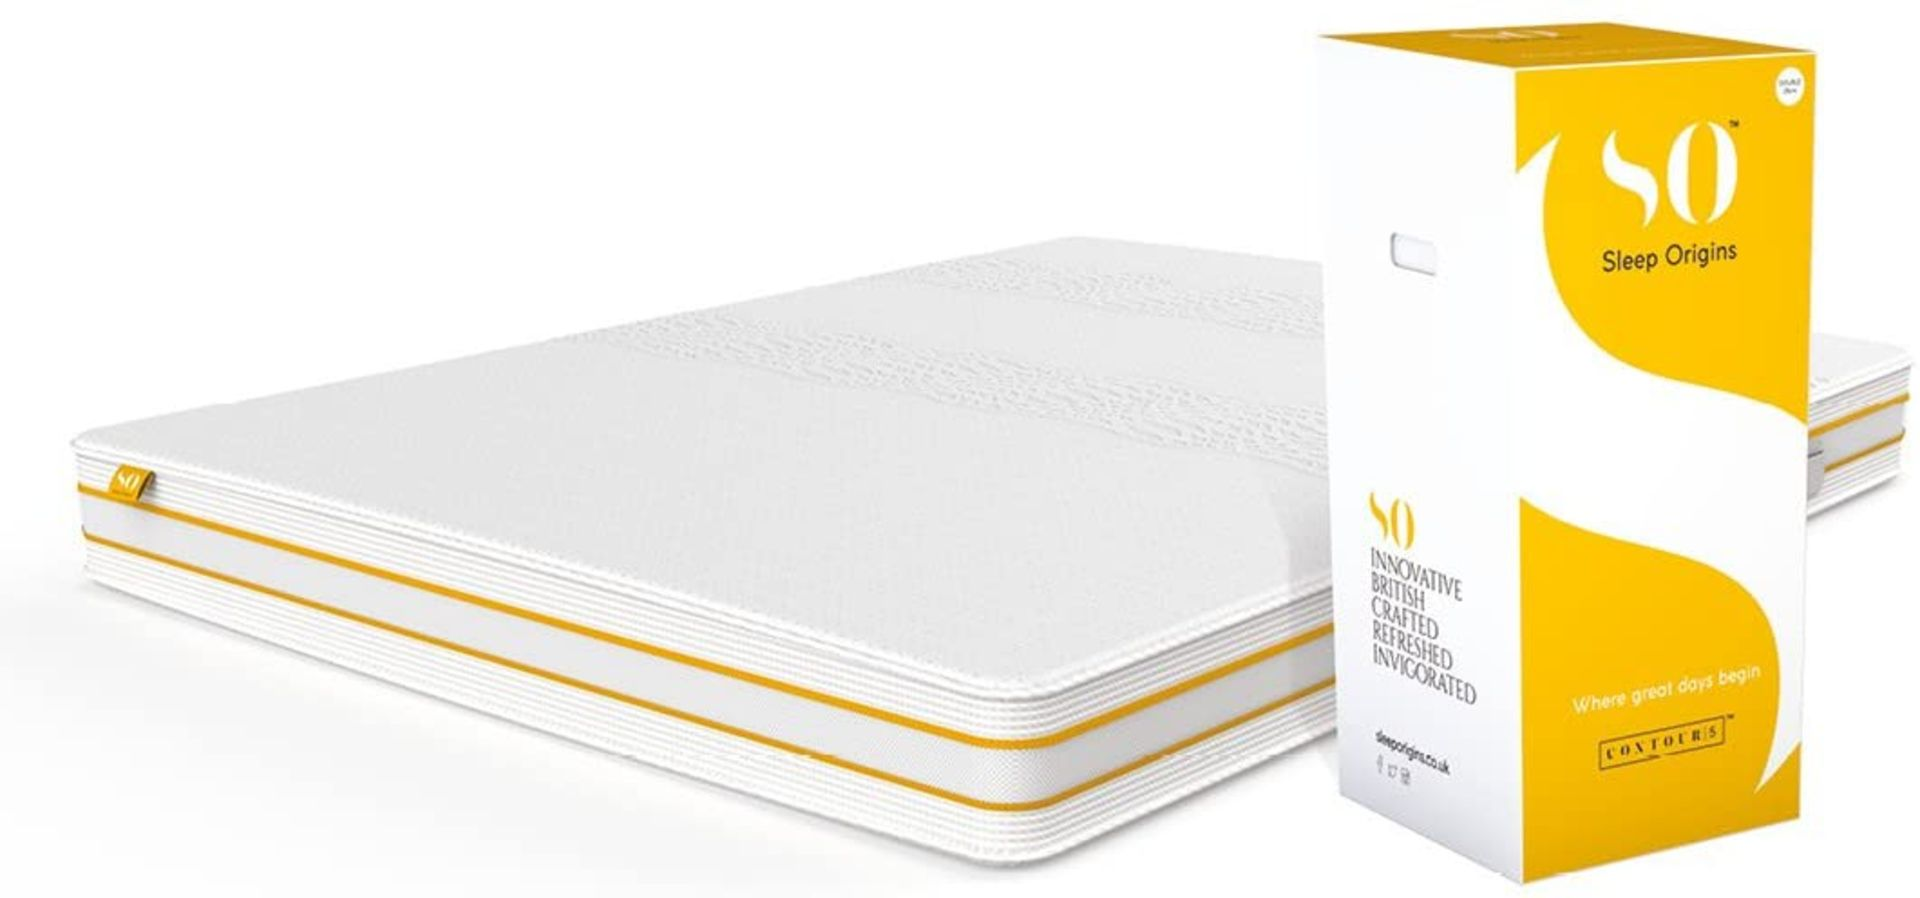 | 1X | SLEEP ORIGINS SUPER KING SIZE 15CM DEEP MATTRESS | NEW AND BOXED| NO ONLINE RESALE | RRP £599